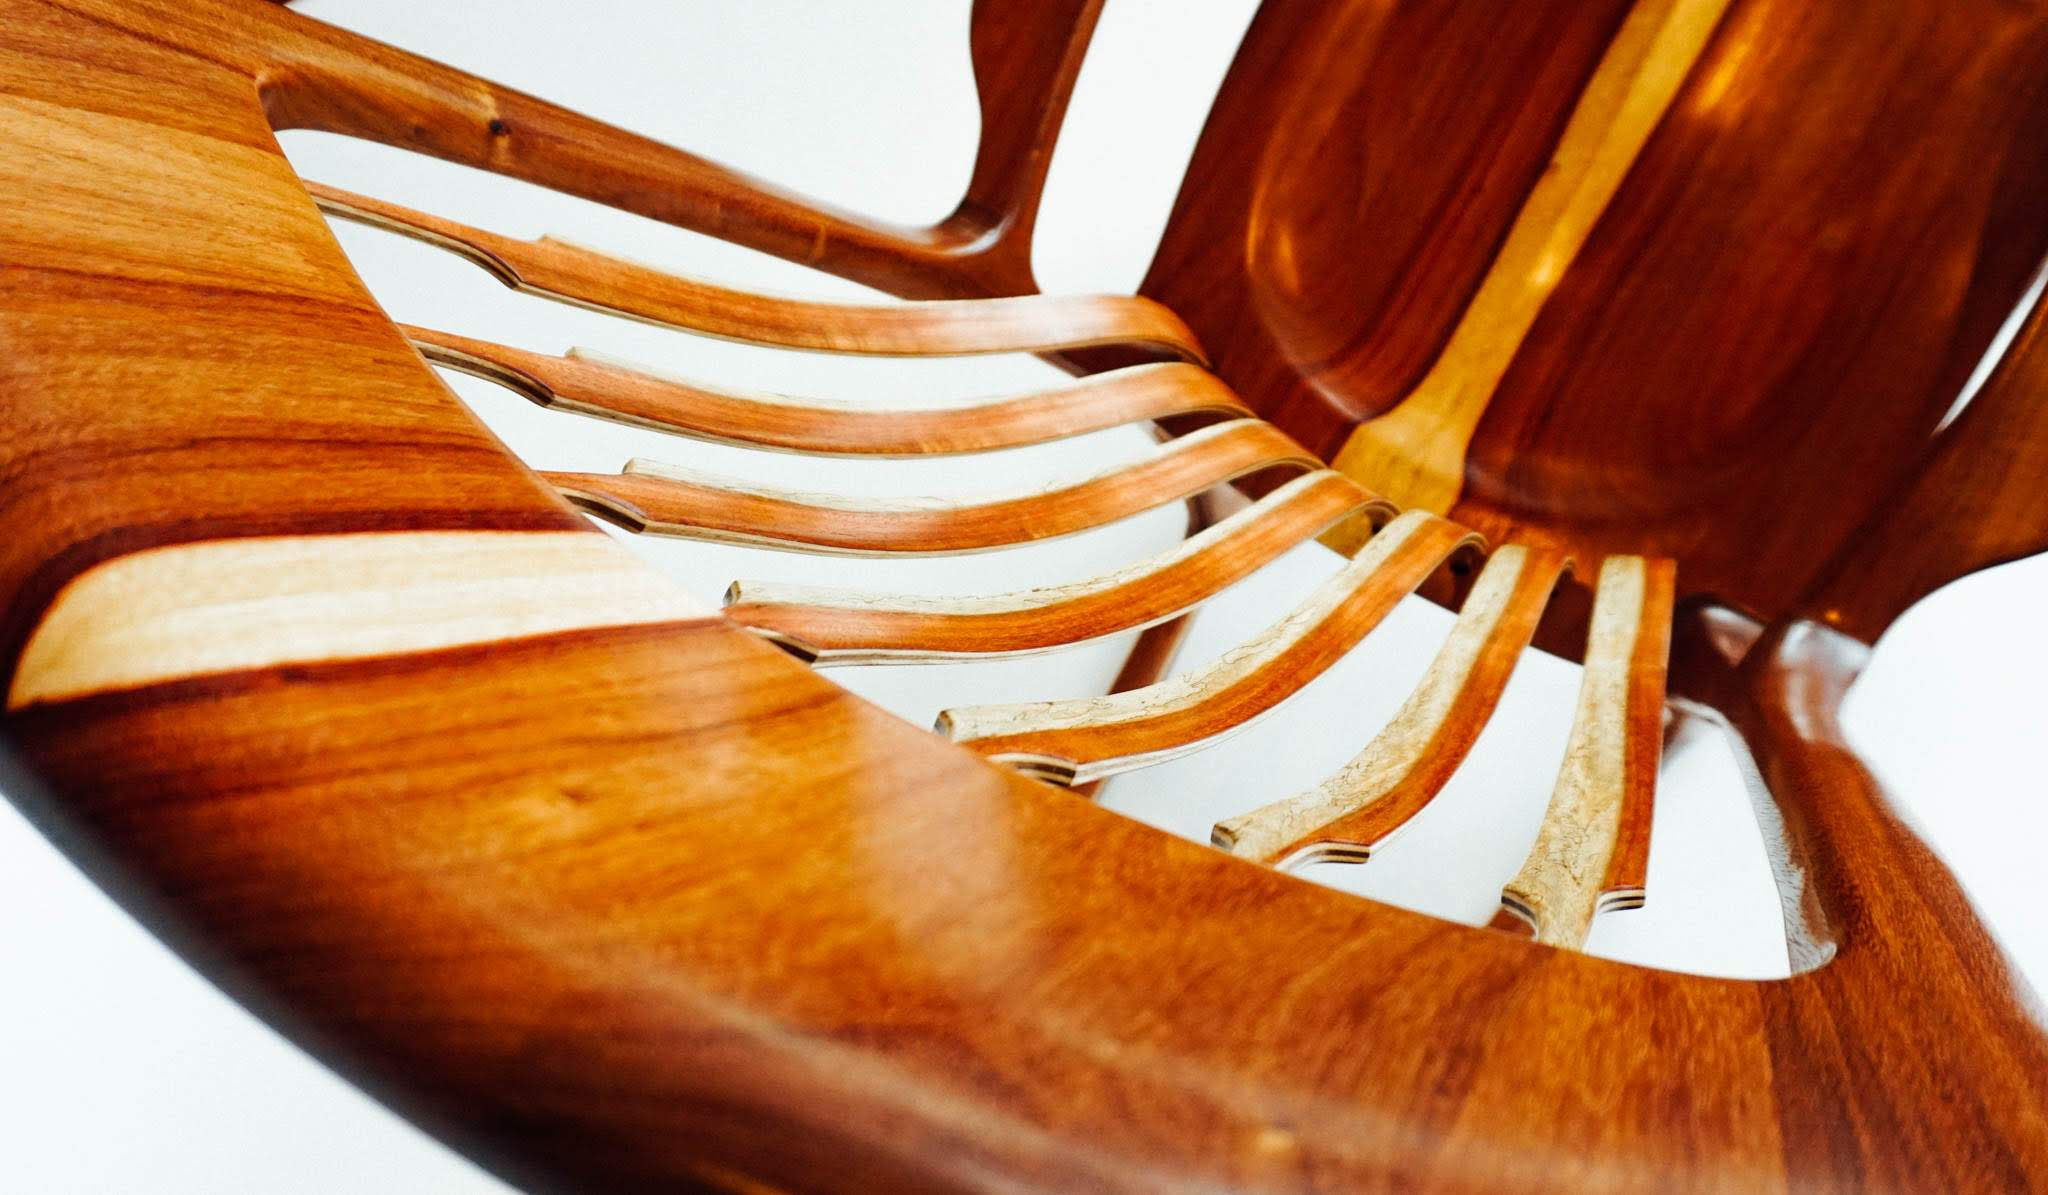 This photo highlights the sapwood detail in the headrest,  back braces and seat.  All the wood is carefully grain matched for beautiful symmetry.